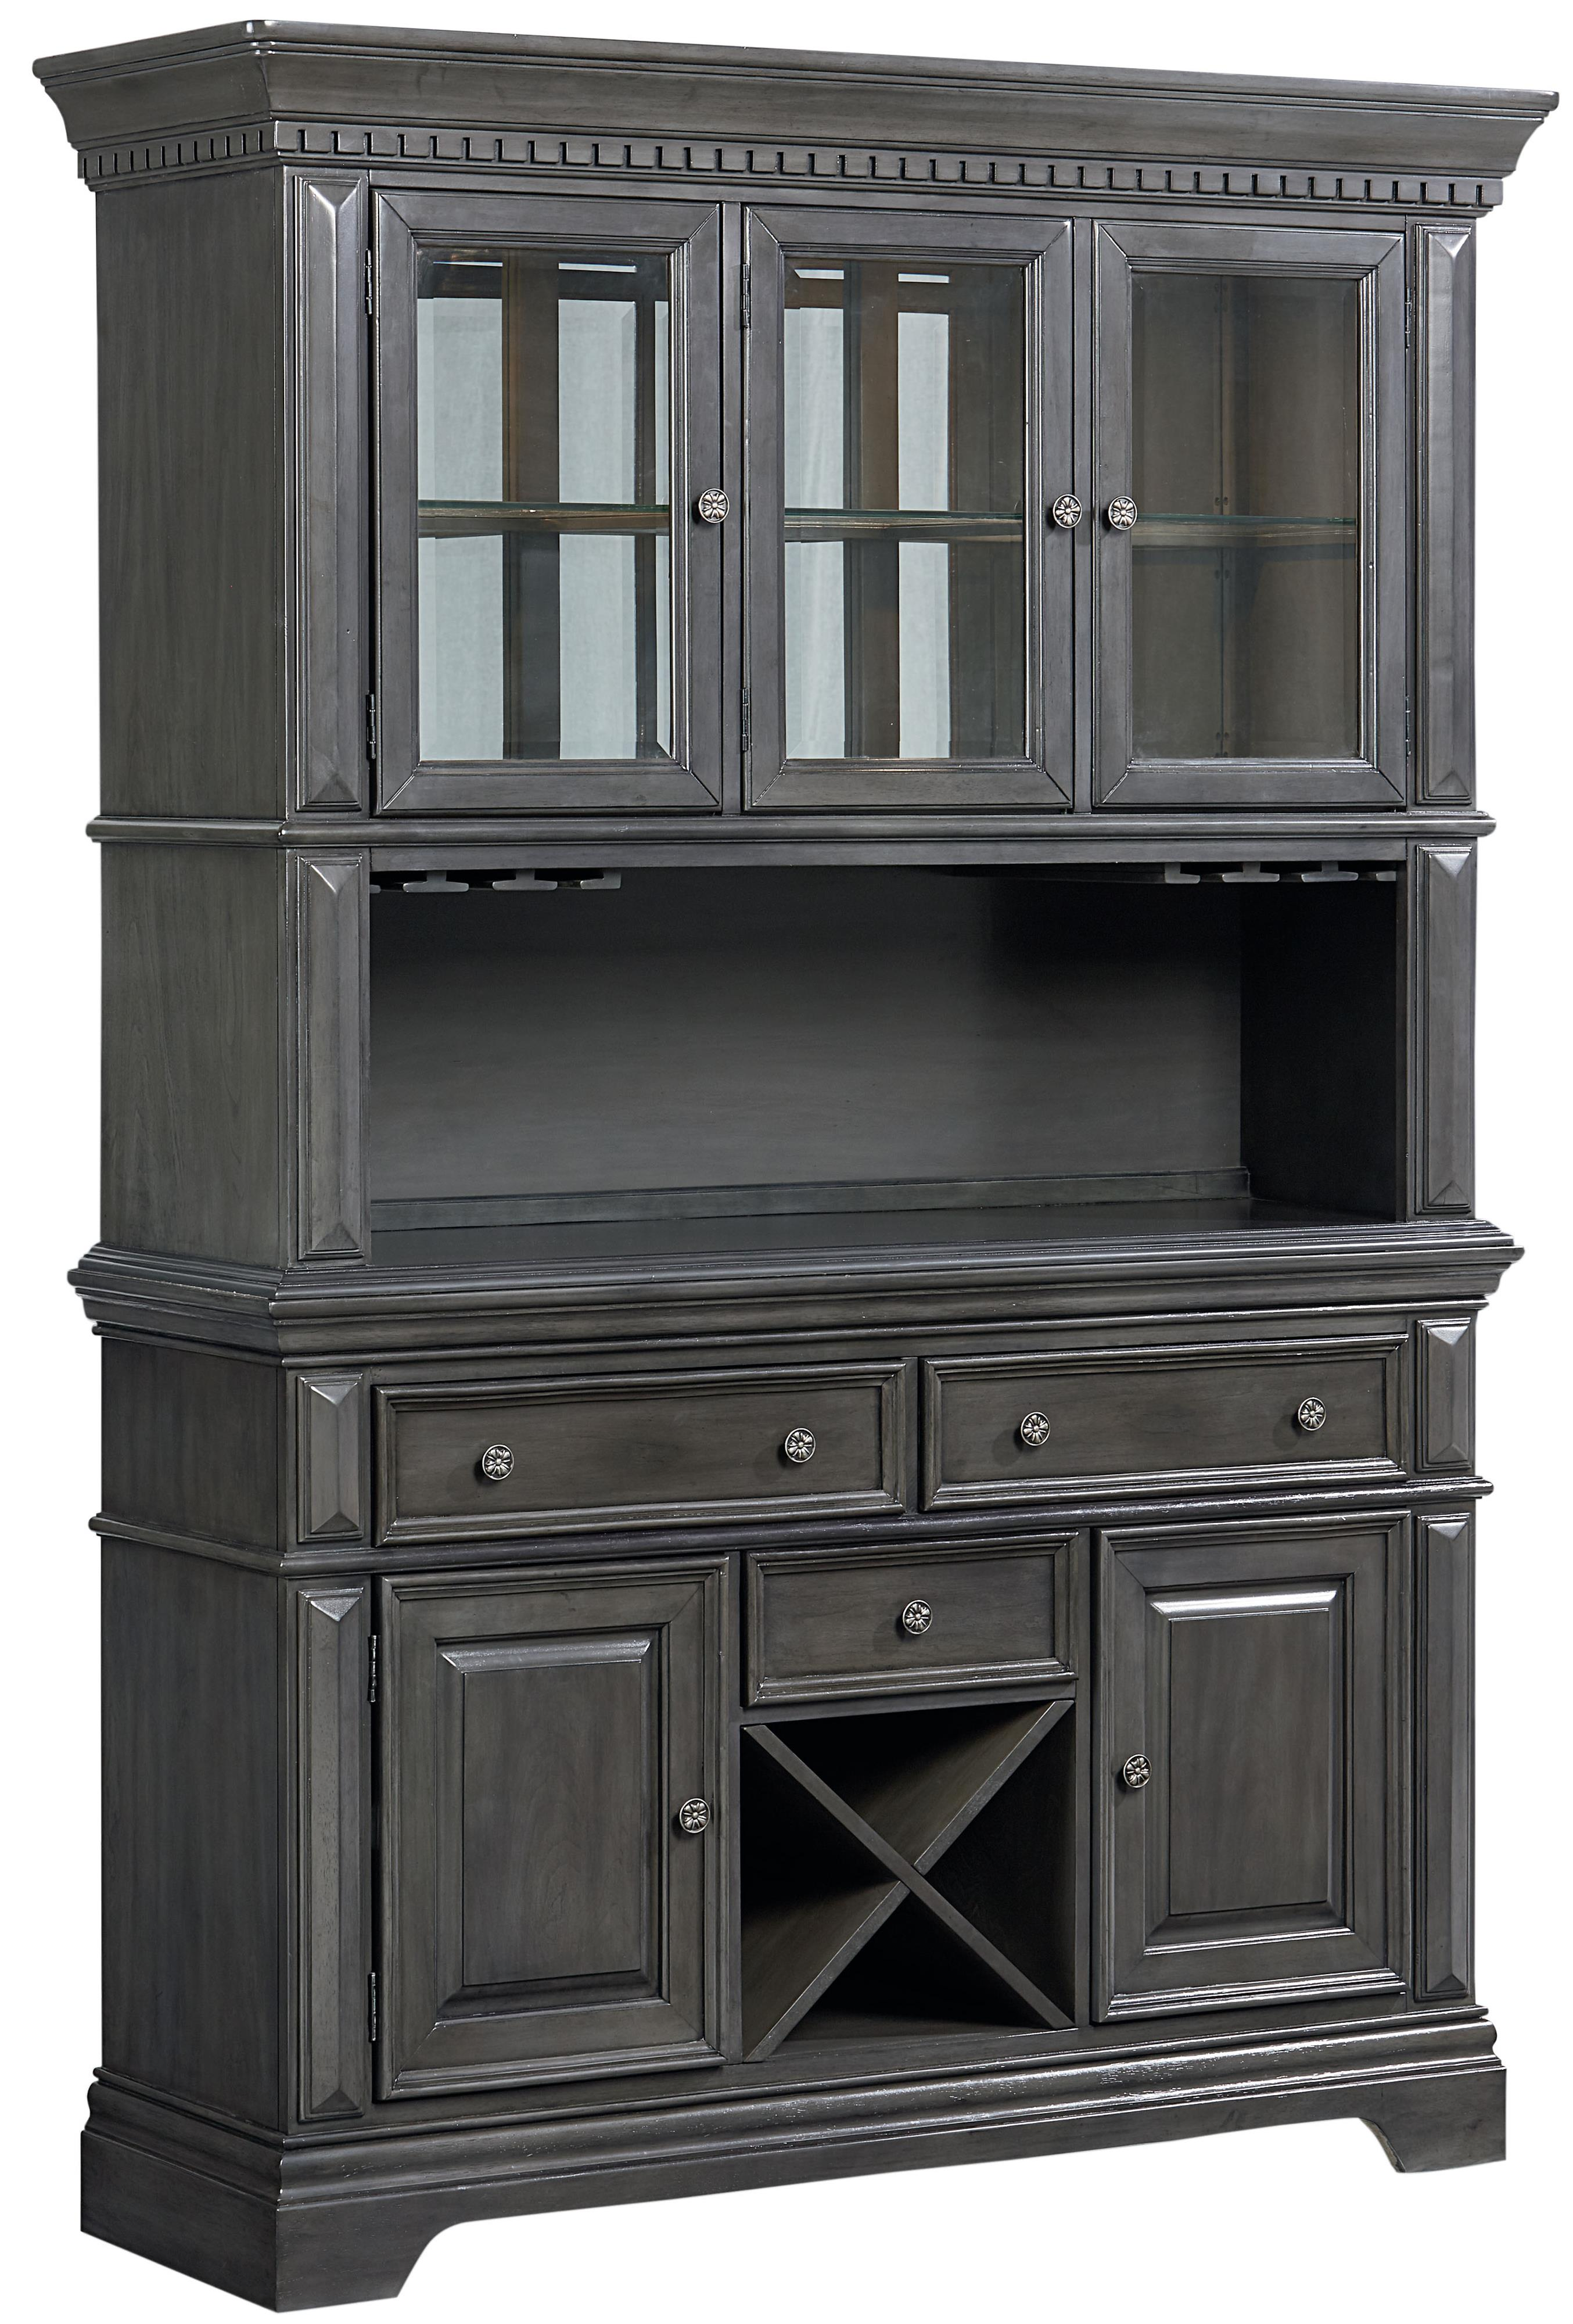 Standard Furniture Garrison 14908 2014908 Traditionally